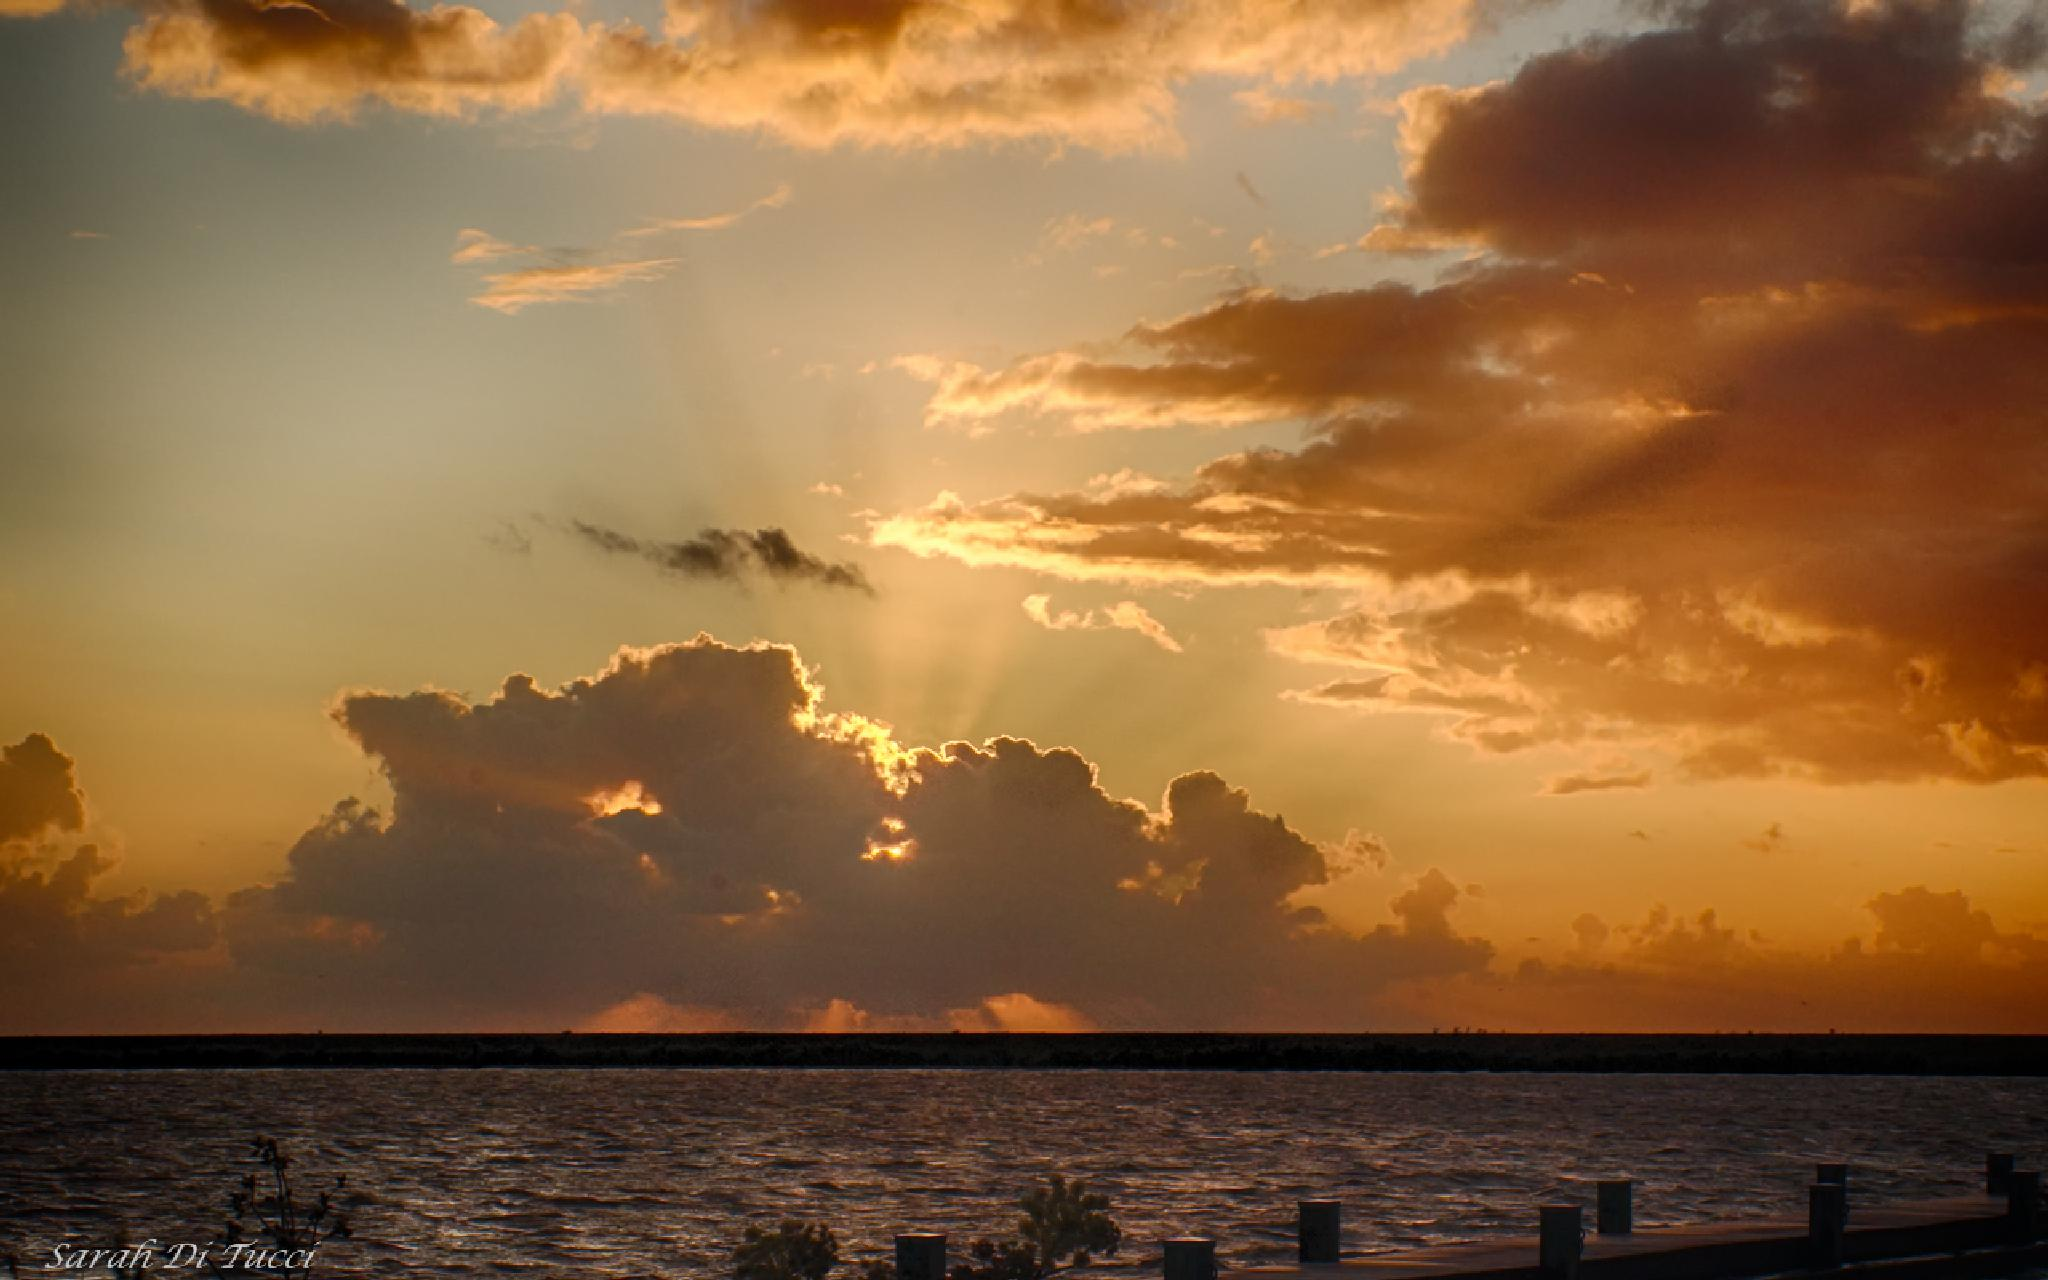 Sunset yesterday evenening by Sarah Di Tucci